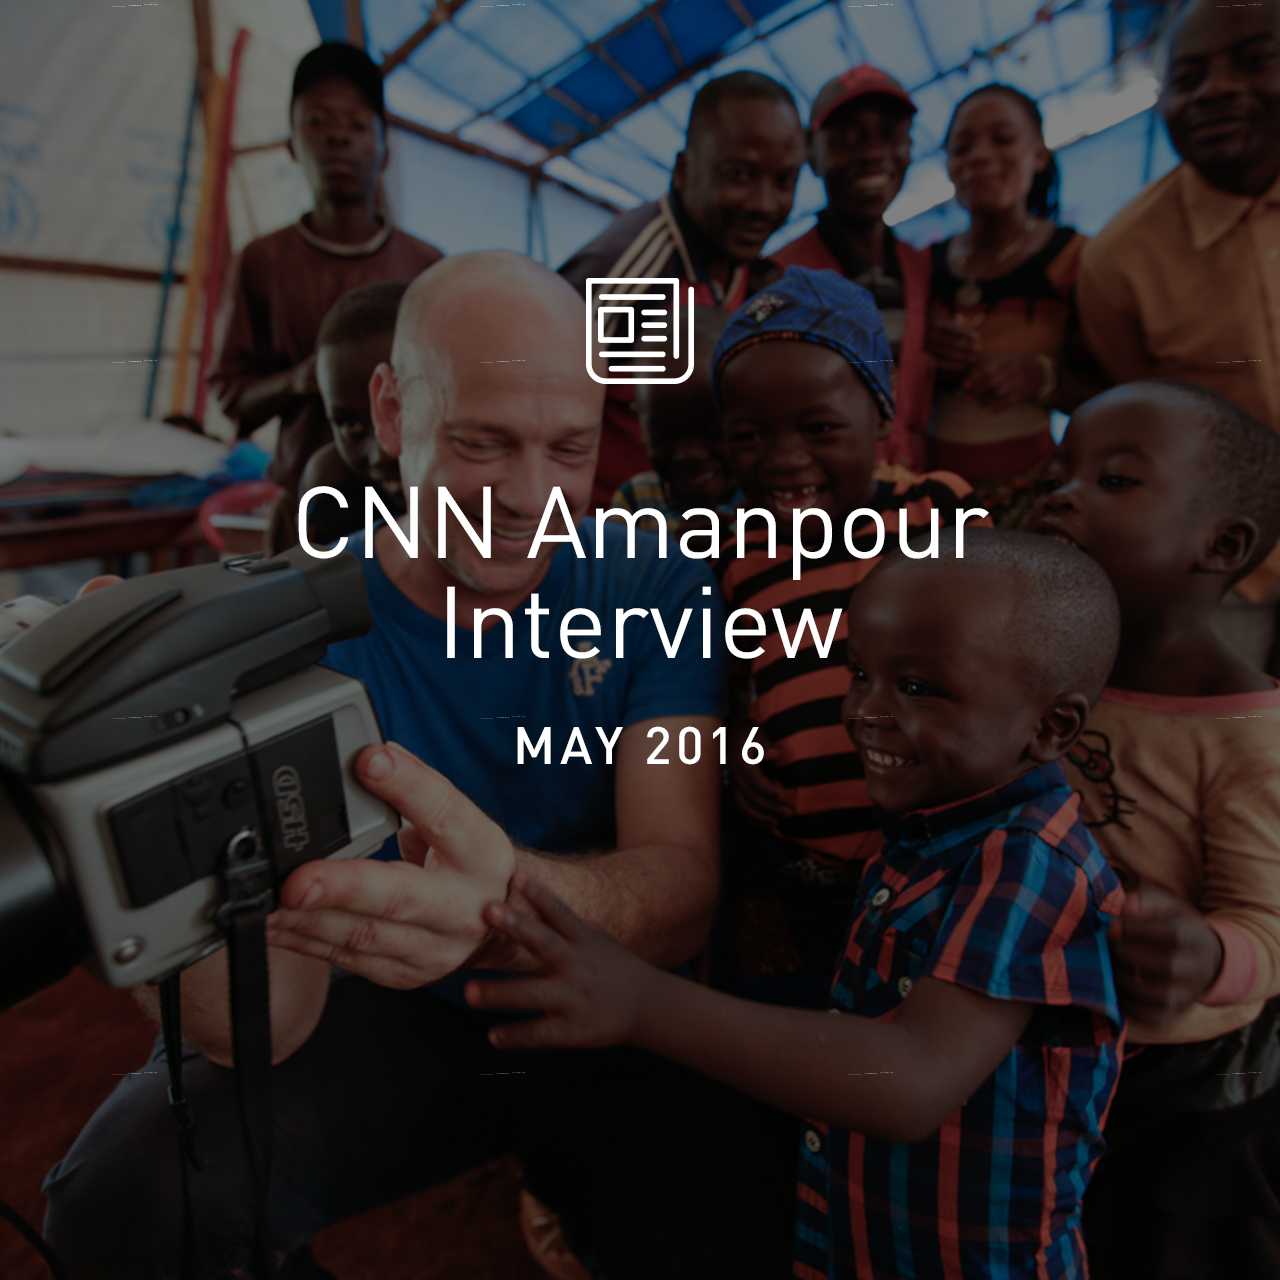 new_c_The Art of Survival - CNN Amanpour Interview